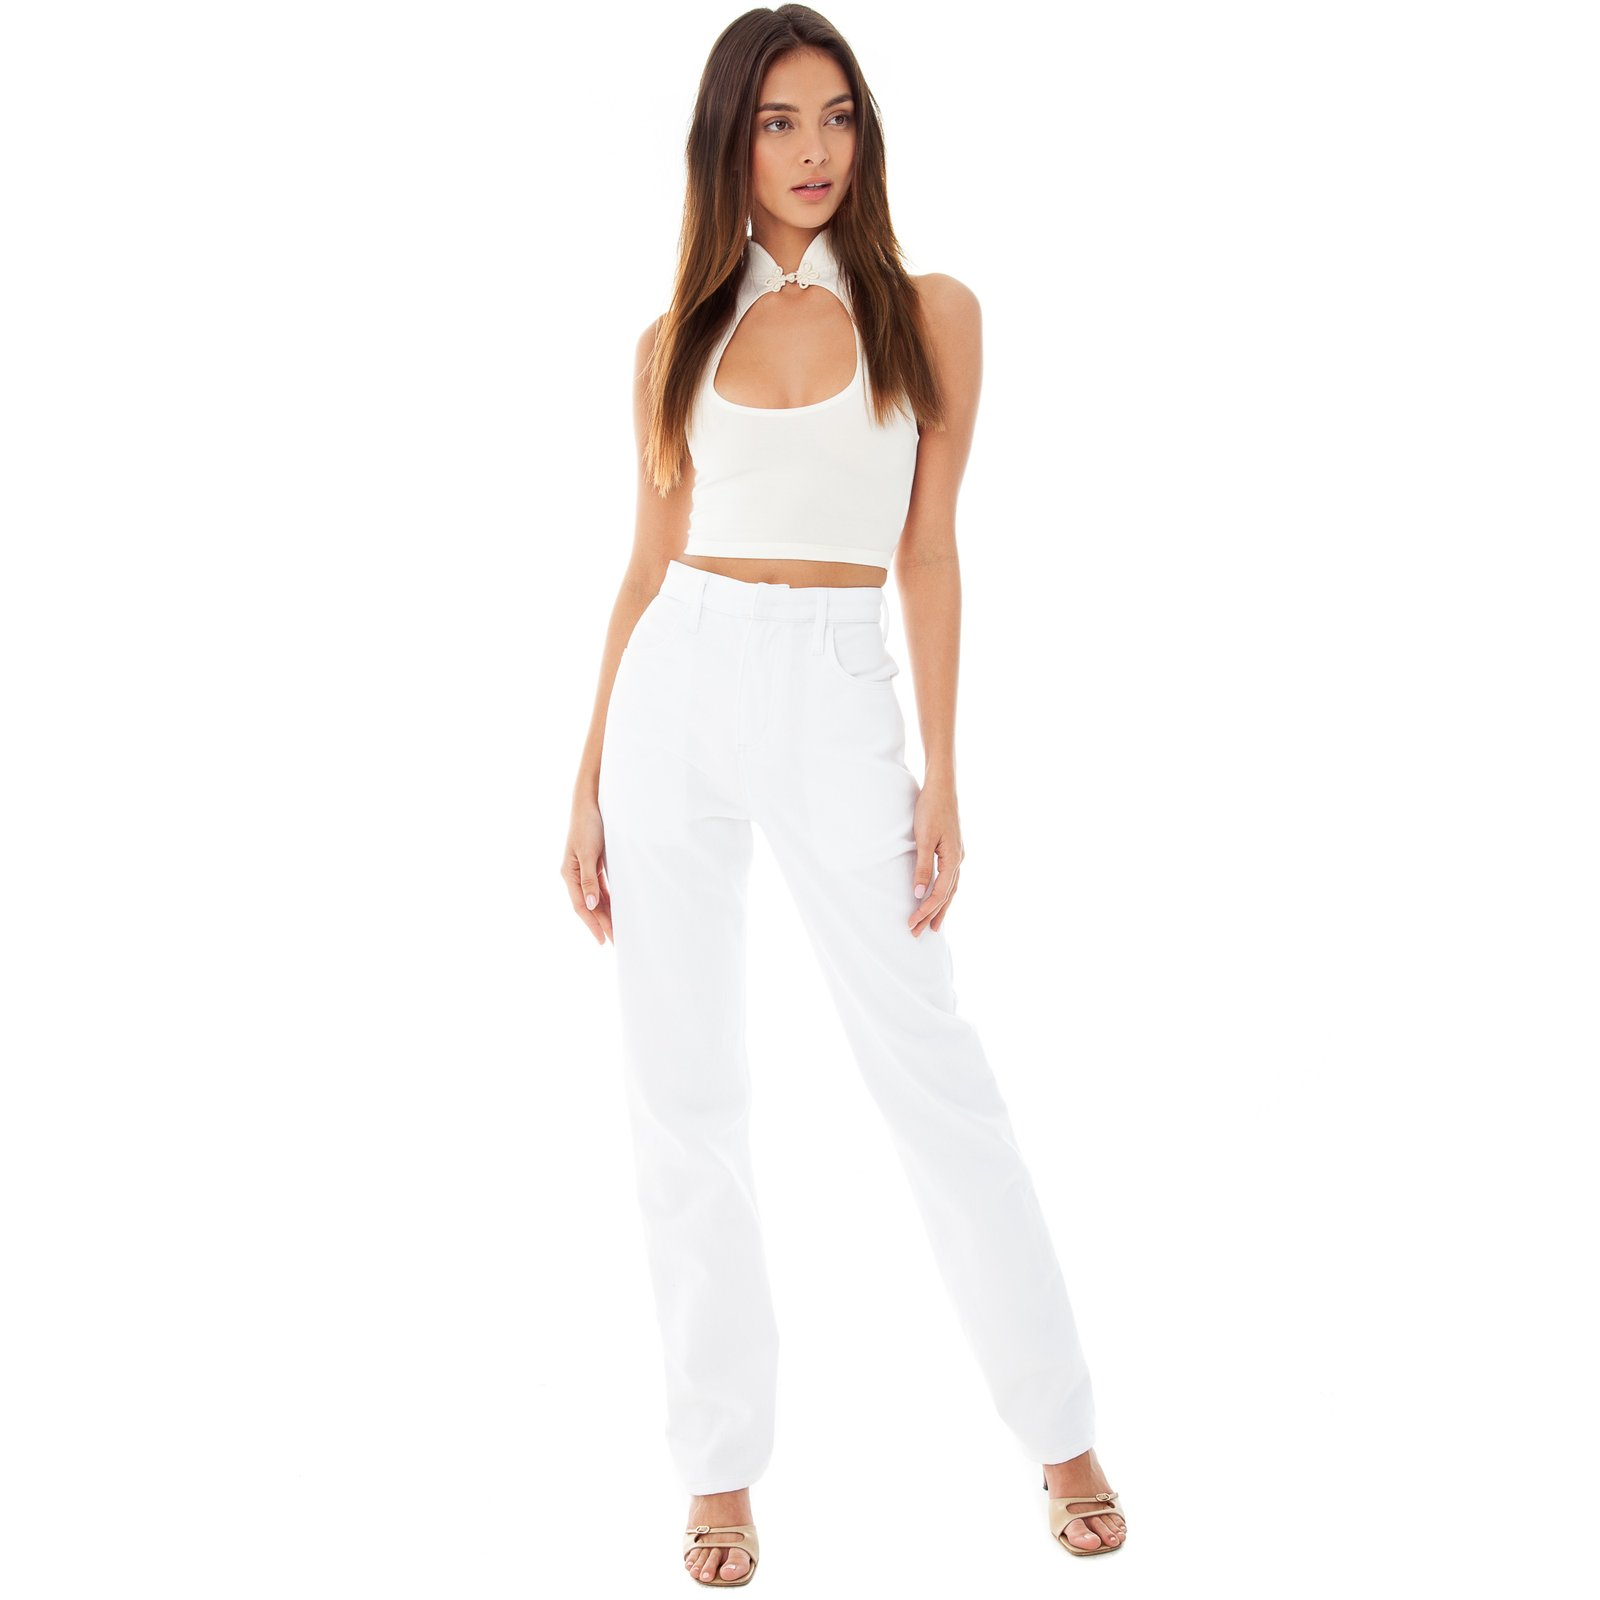 Katana Trouser by Are You Am I, available on areyouami.com for $240 Kendall Jenner Pants Exact Product